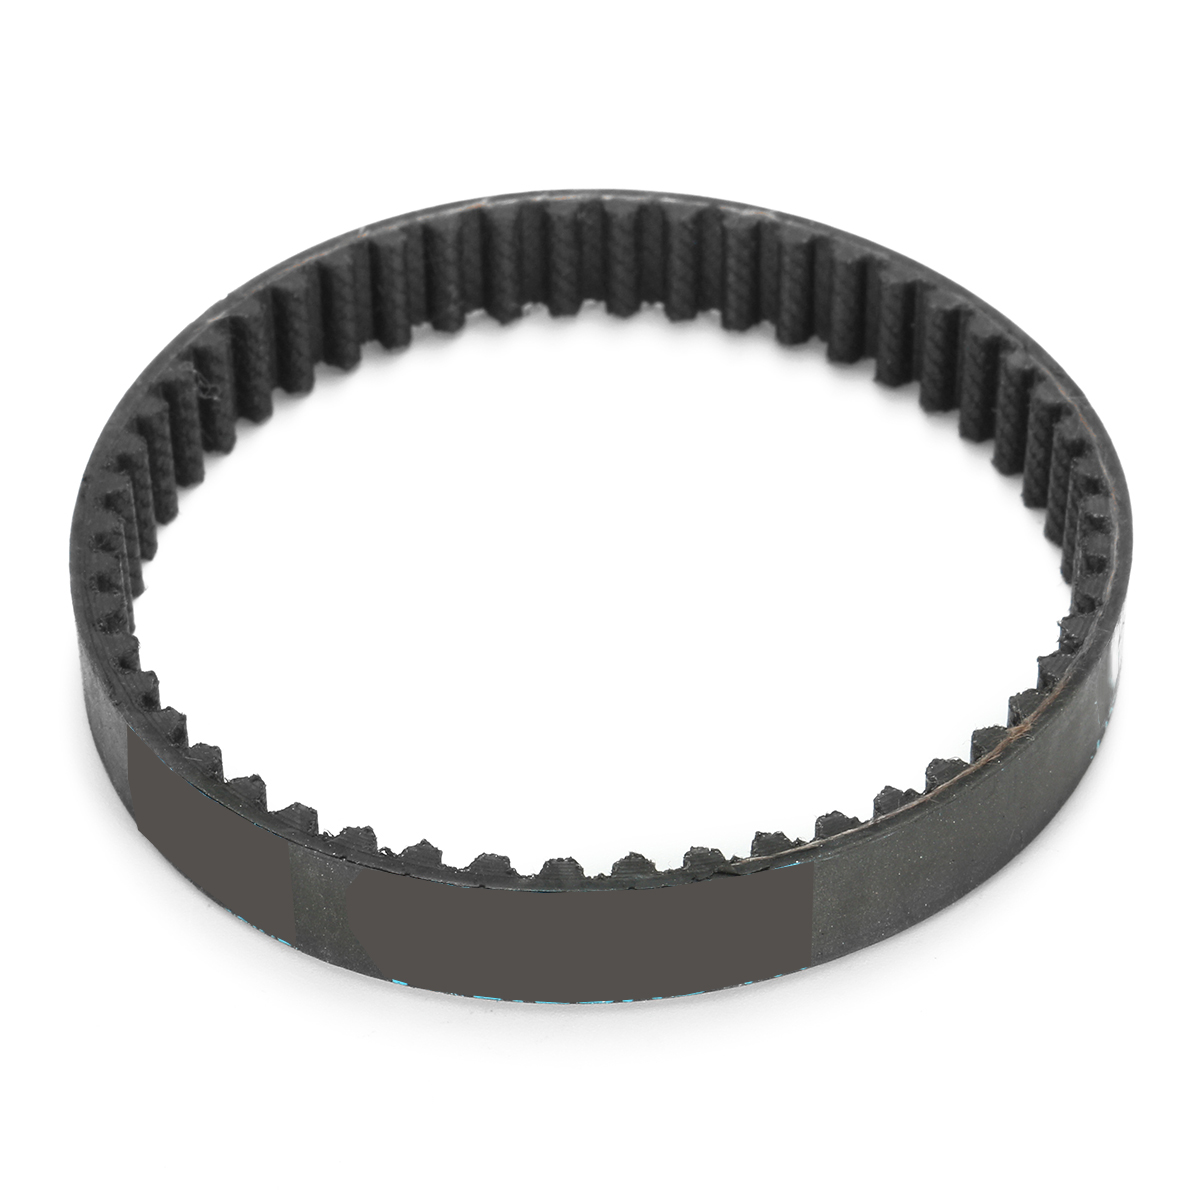 Buy 15MM Belt For 80MM Wheels Electic Skateboard Parts